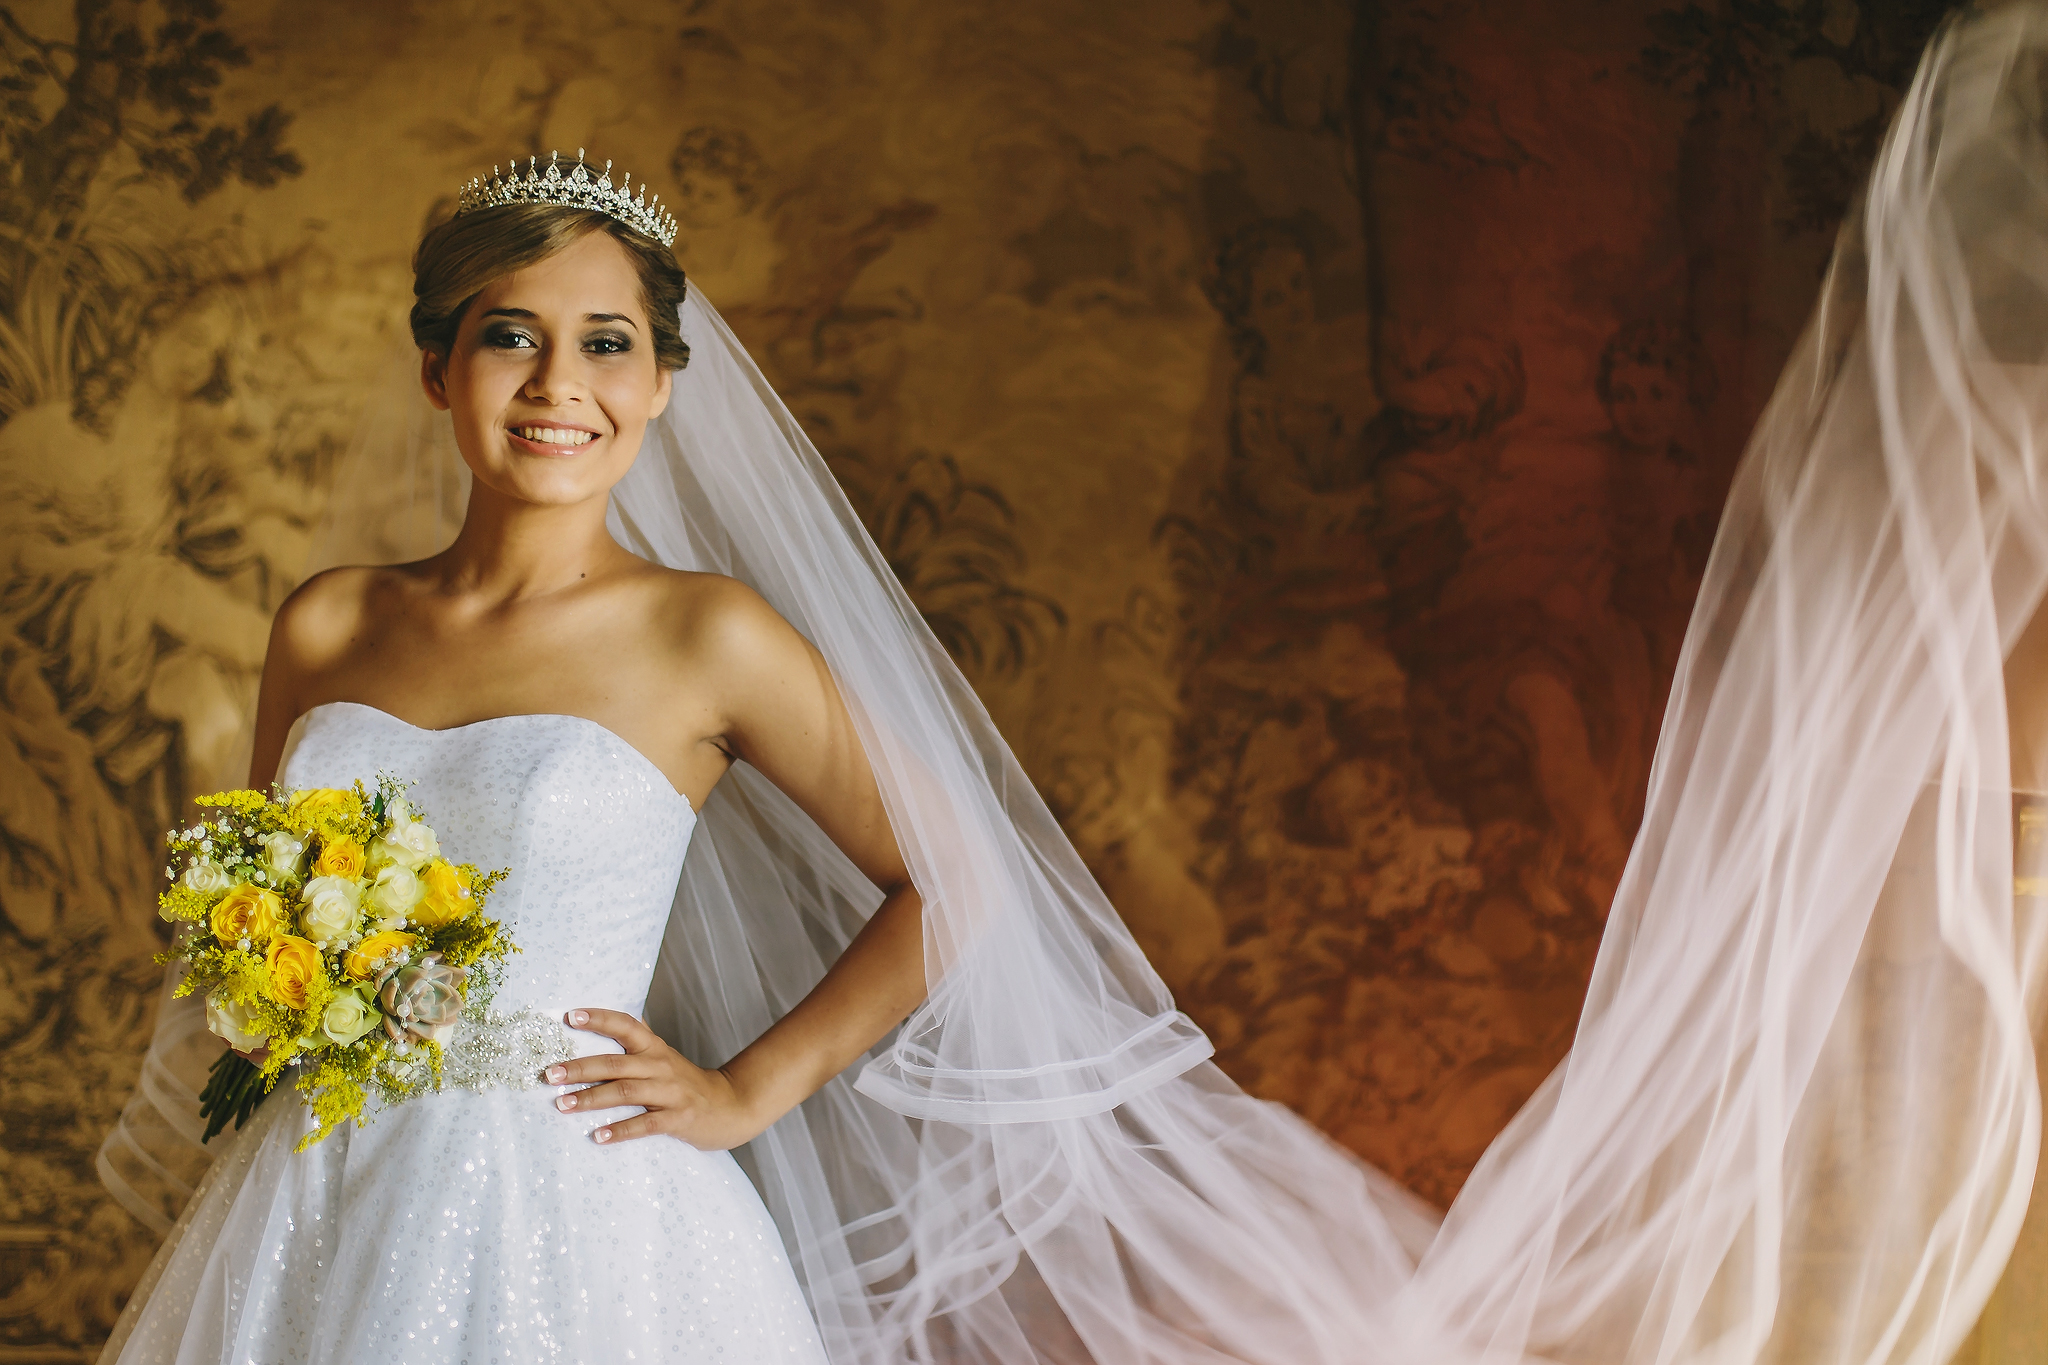 Smiling bride portrait with long veil against tapestry - photo by Ruan Redelinghuys Photography